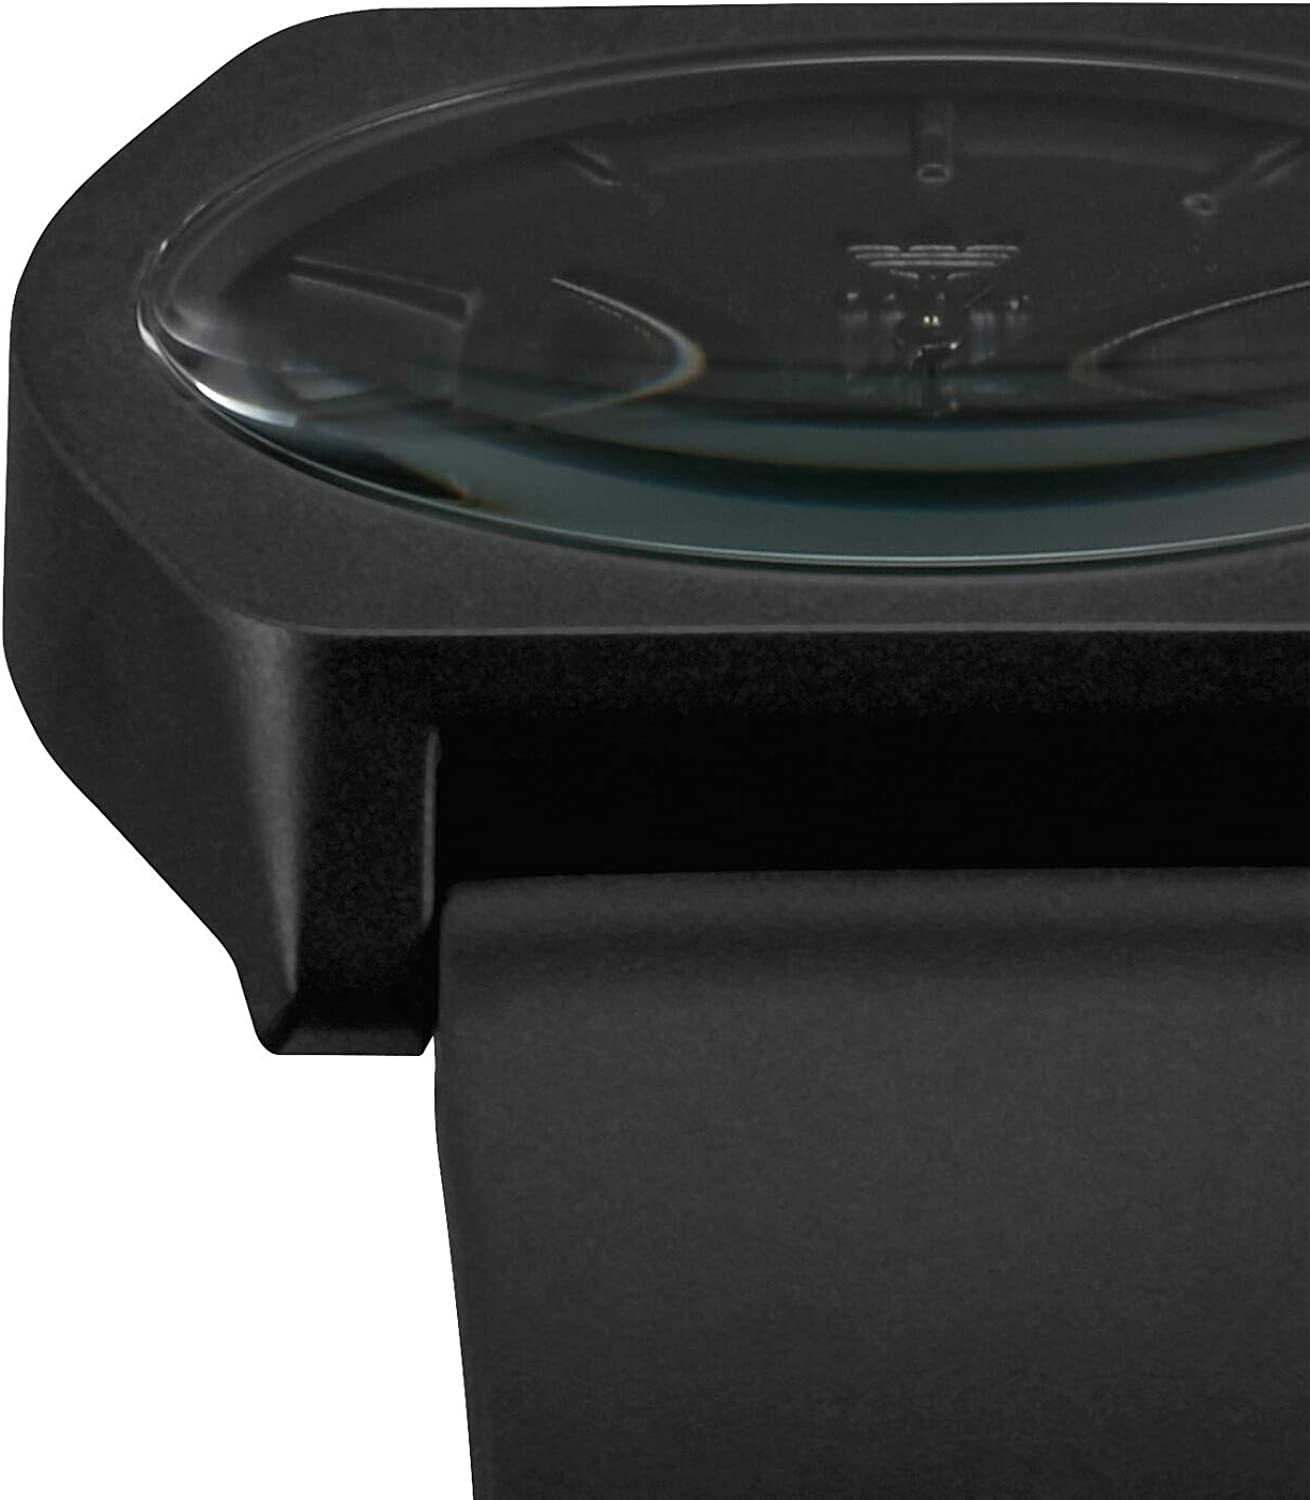 adidas Watches Process_SP1. Silicone Strap, 20mm Width (38 mm). All Black